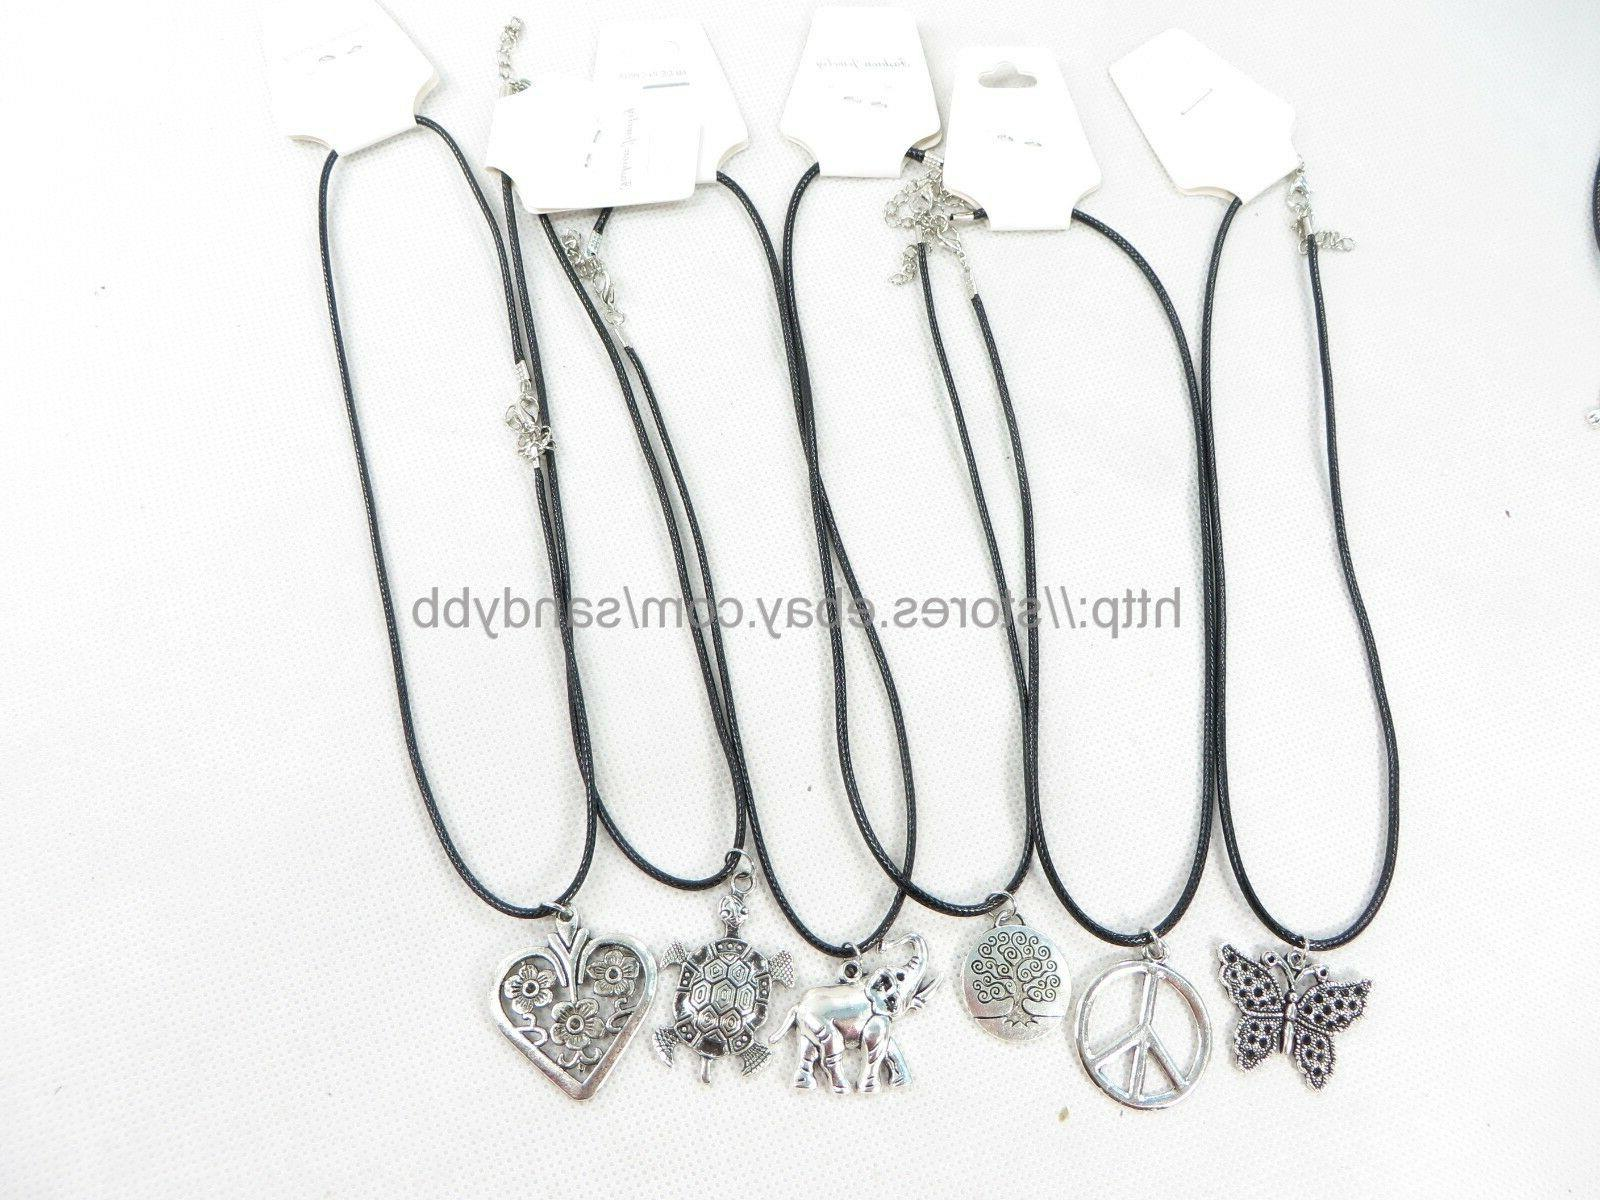 US Seller-$0.80 each, 50 pieces jewelry fashion